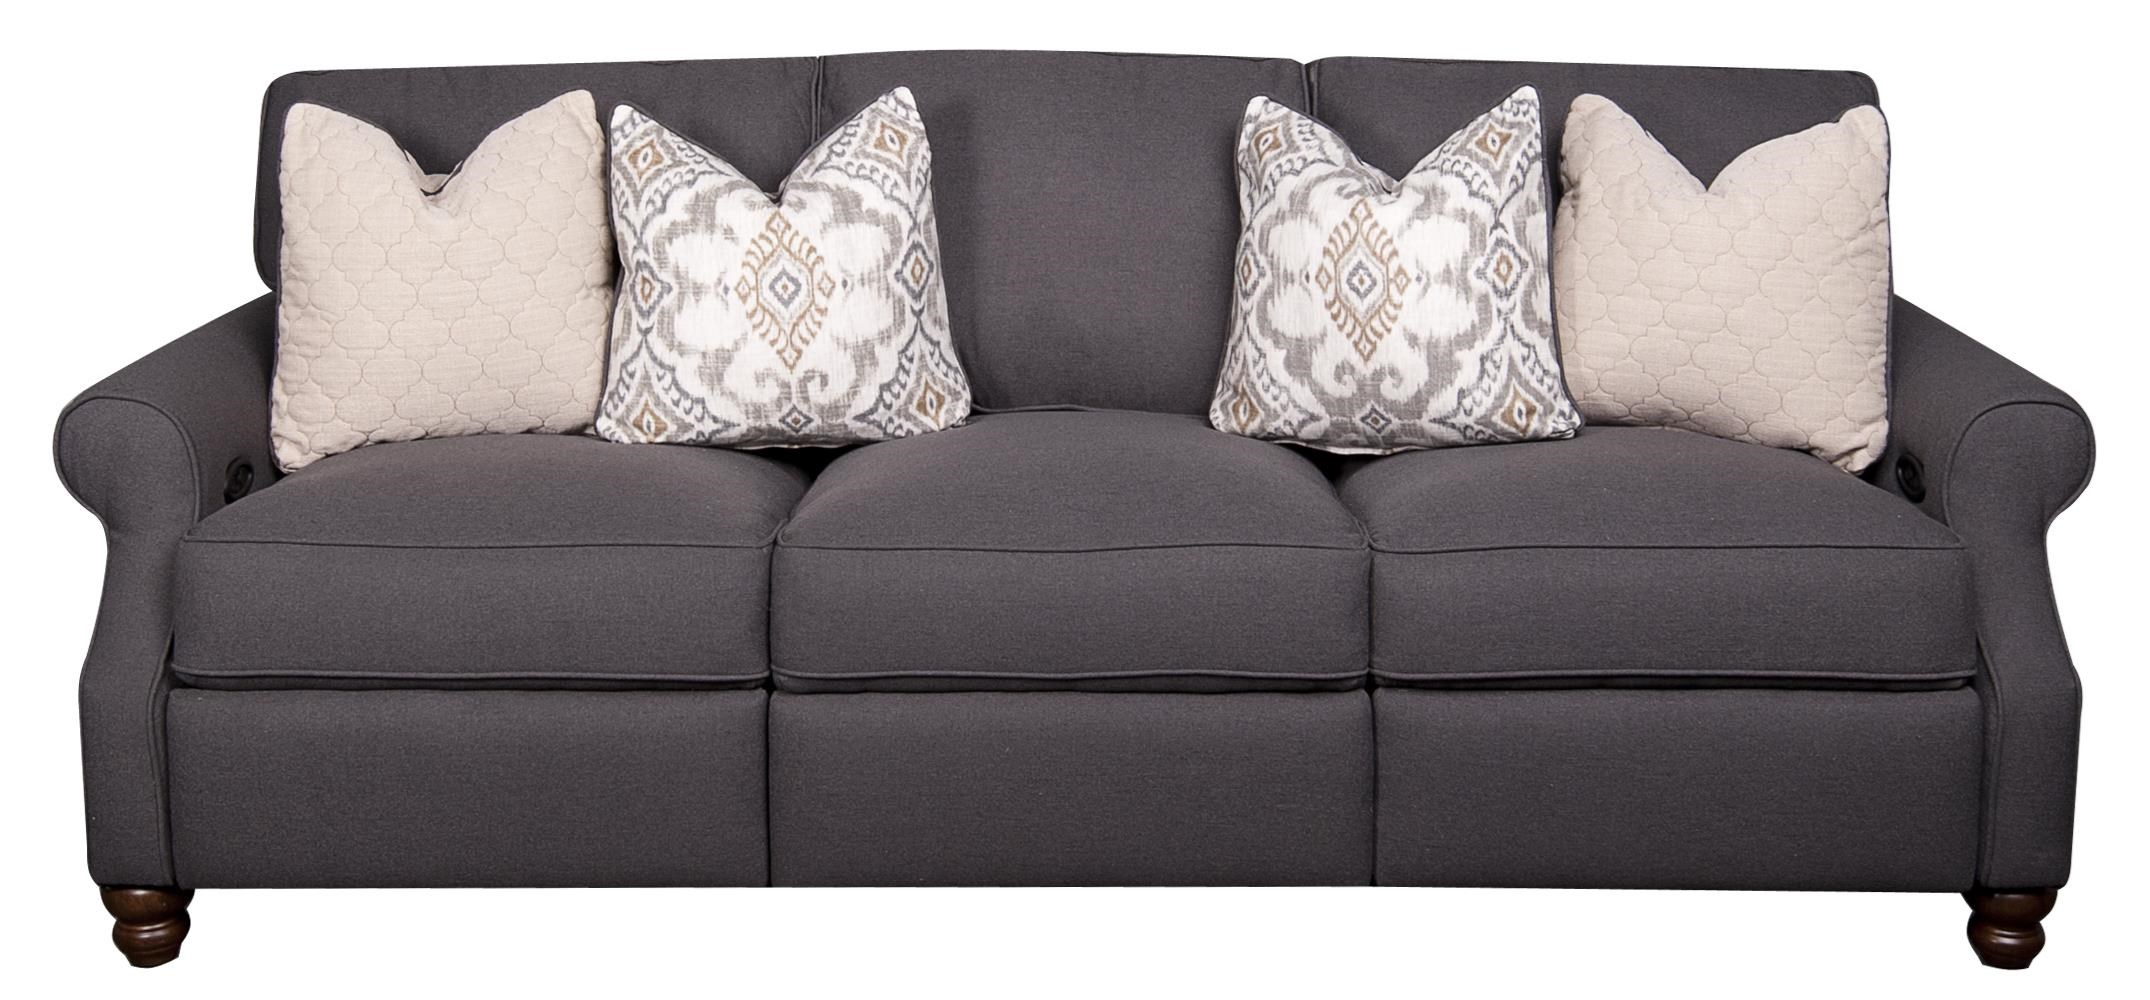 Elliston Place Dixie Dixie Power Hybrid Reclining Sofa - Item Number: 766450918